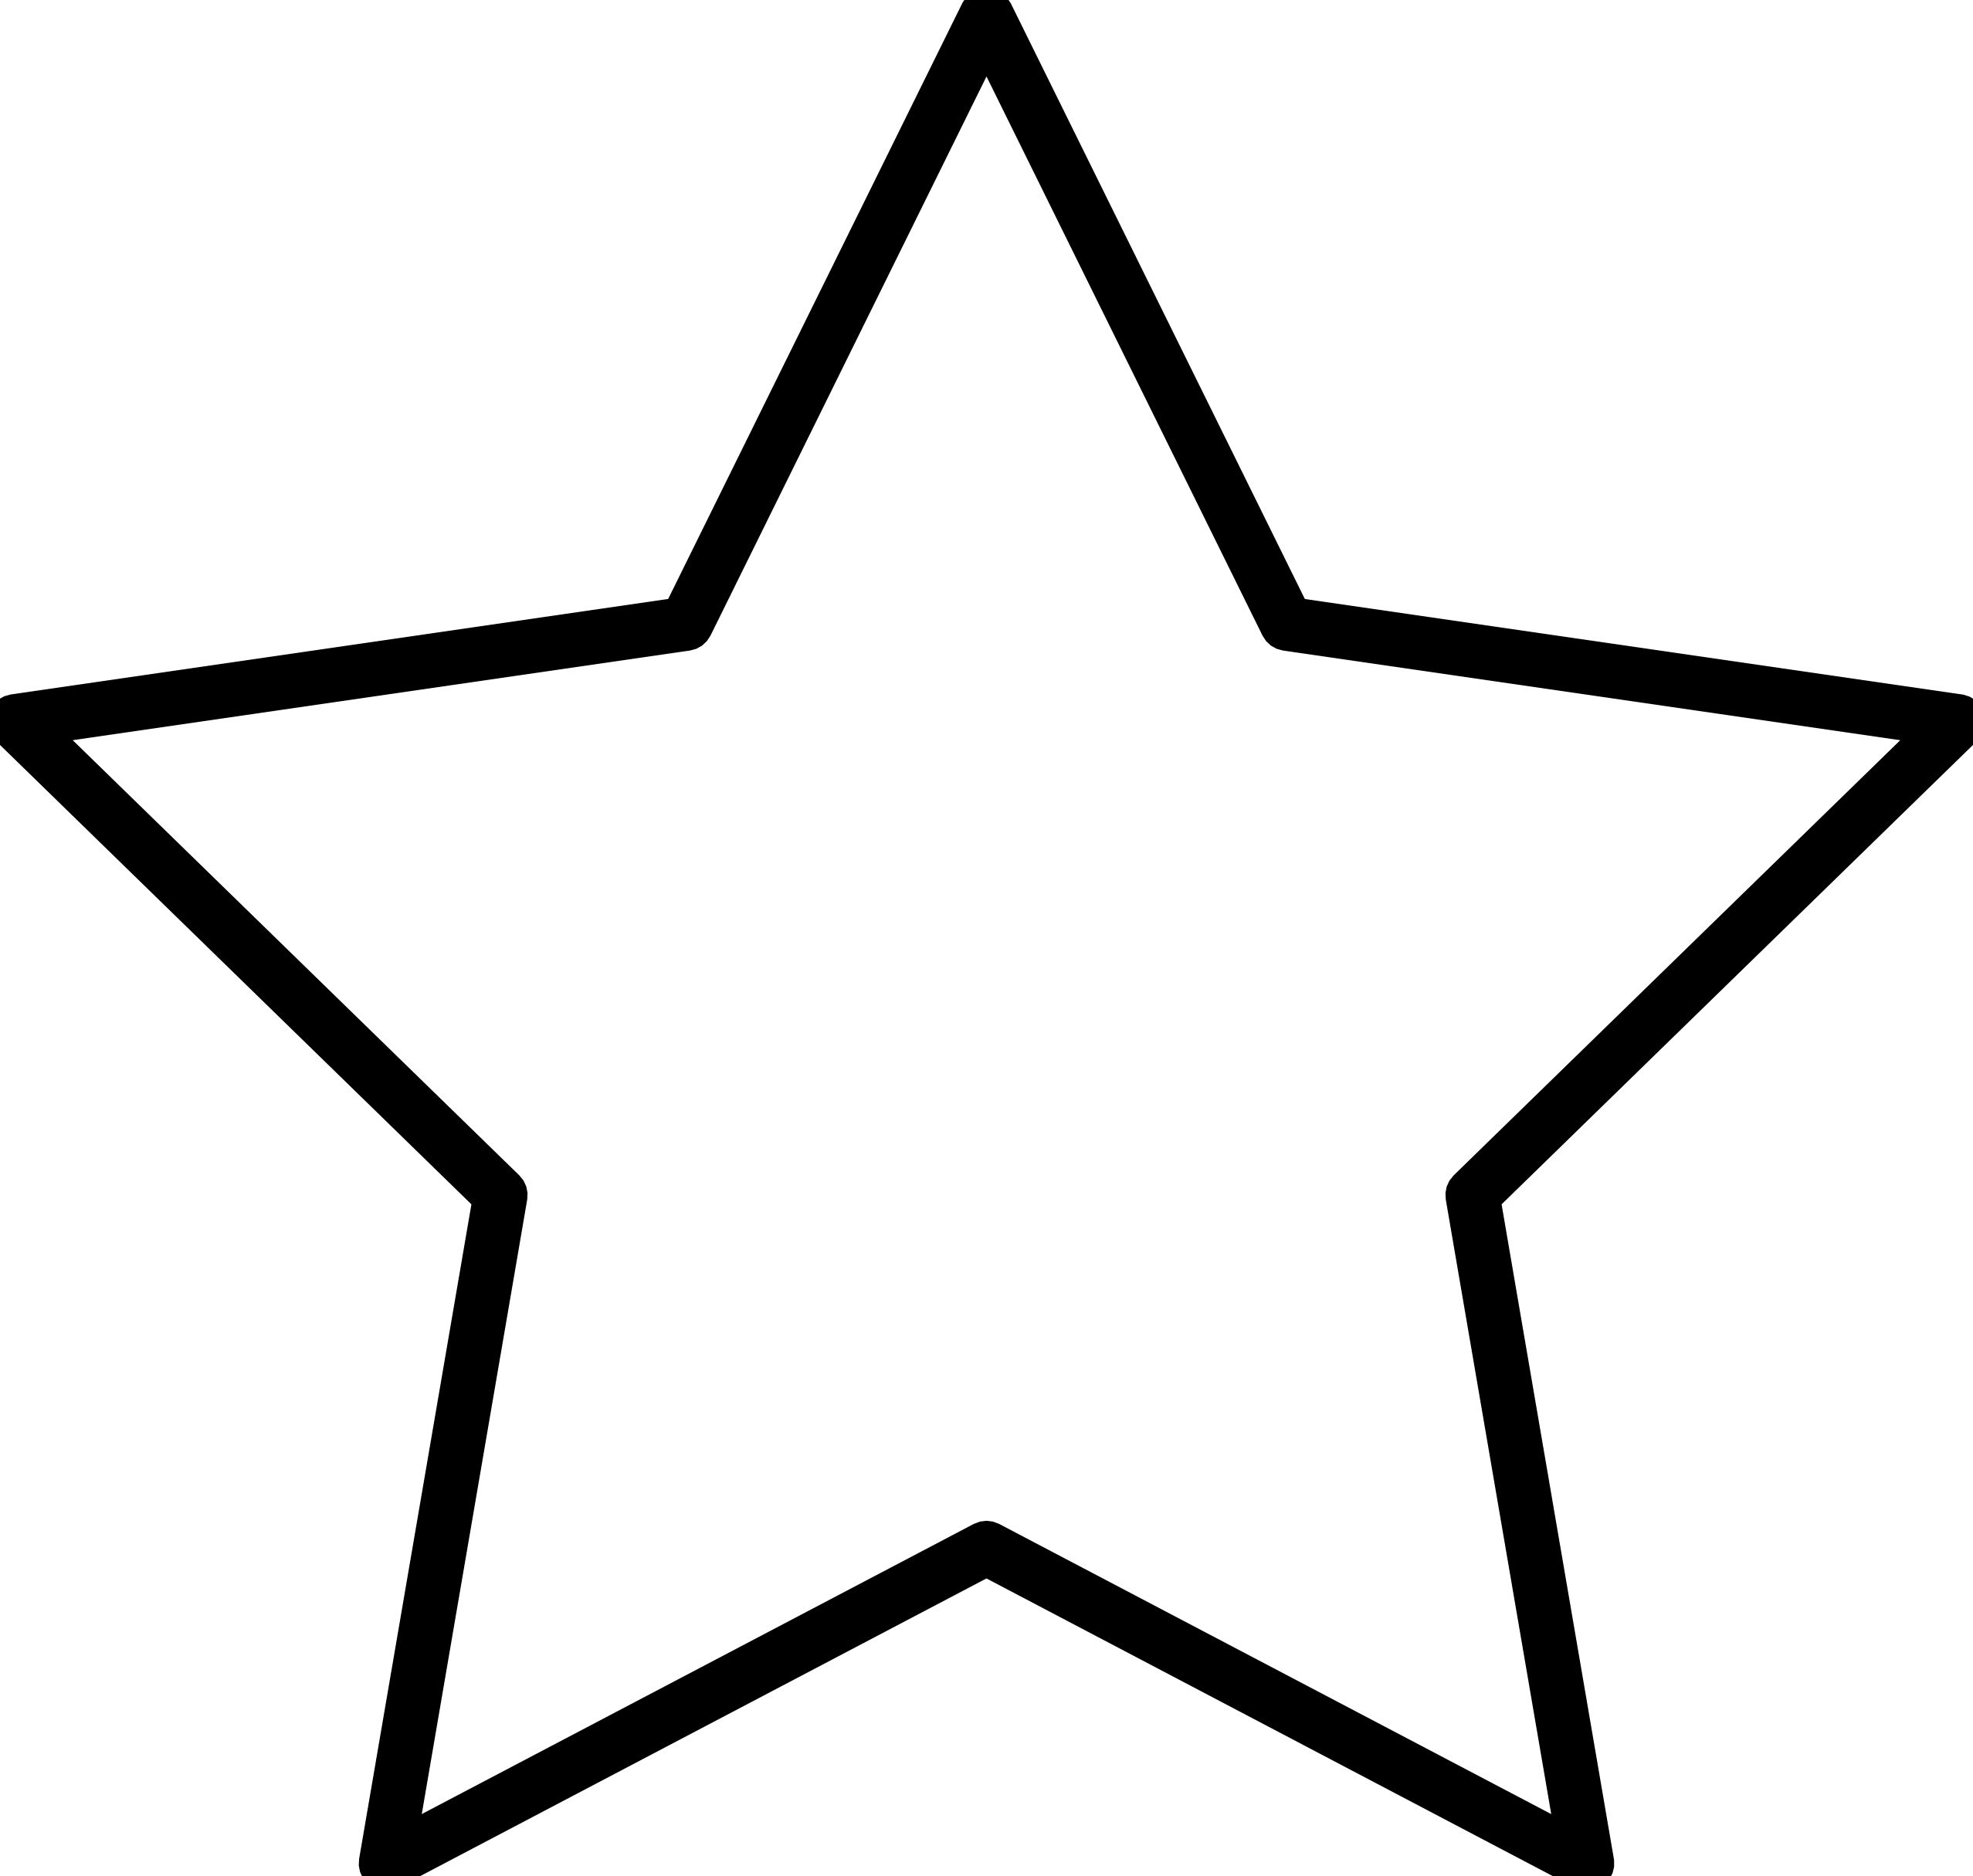 Star Clip Art Black And White